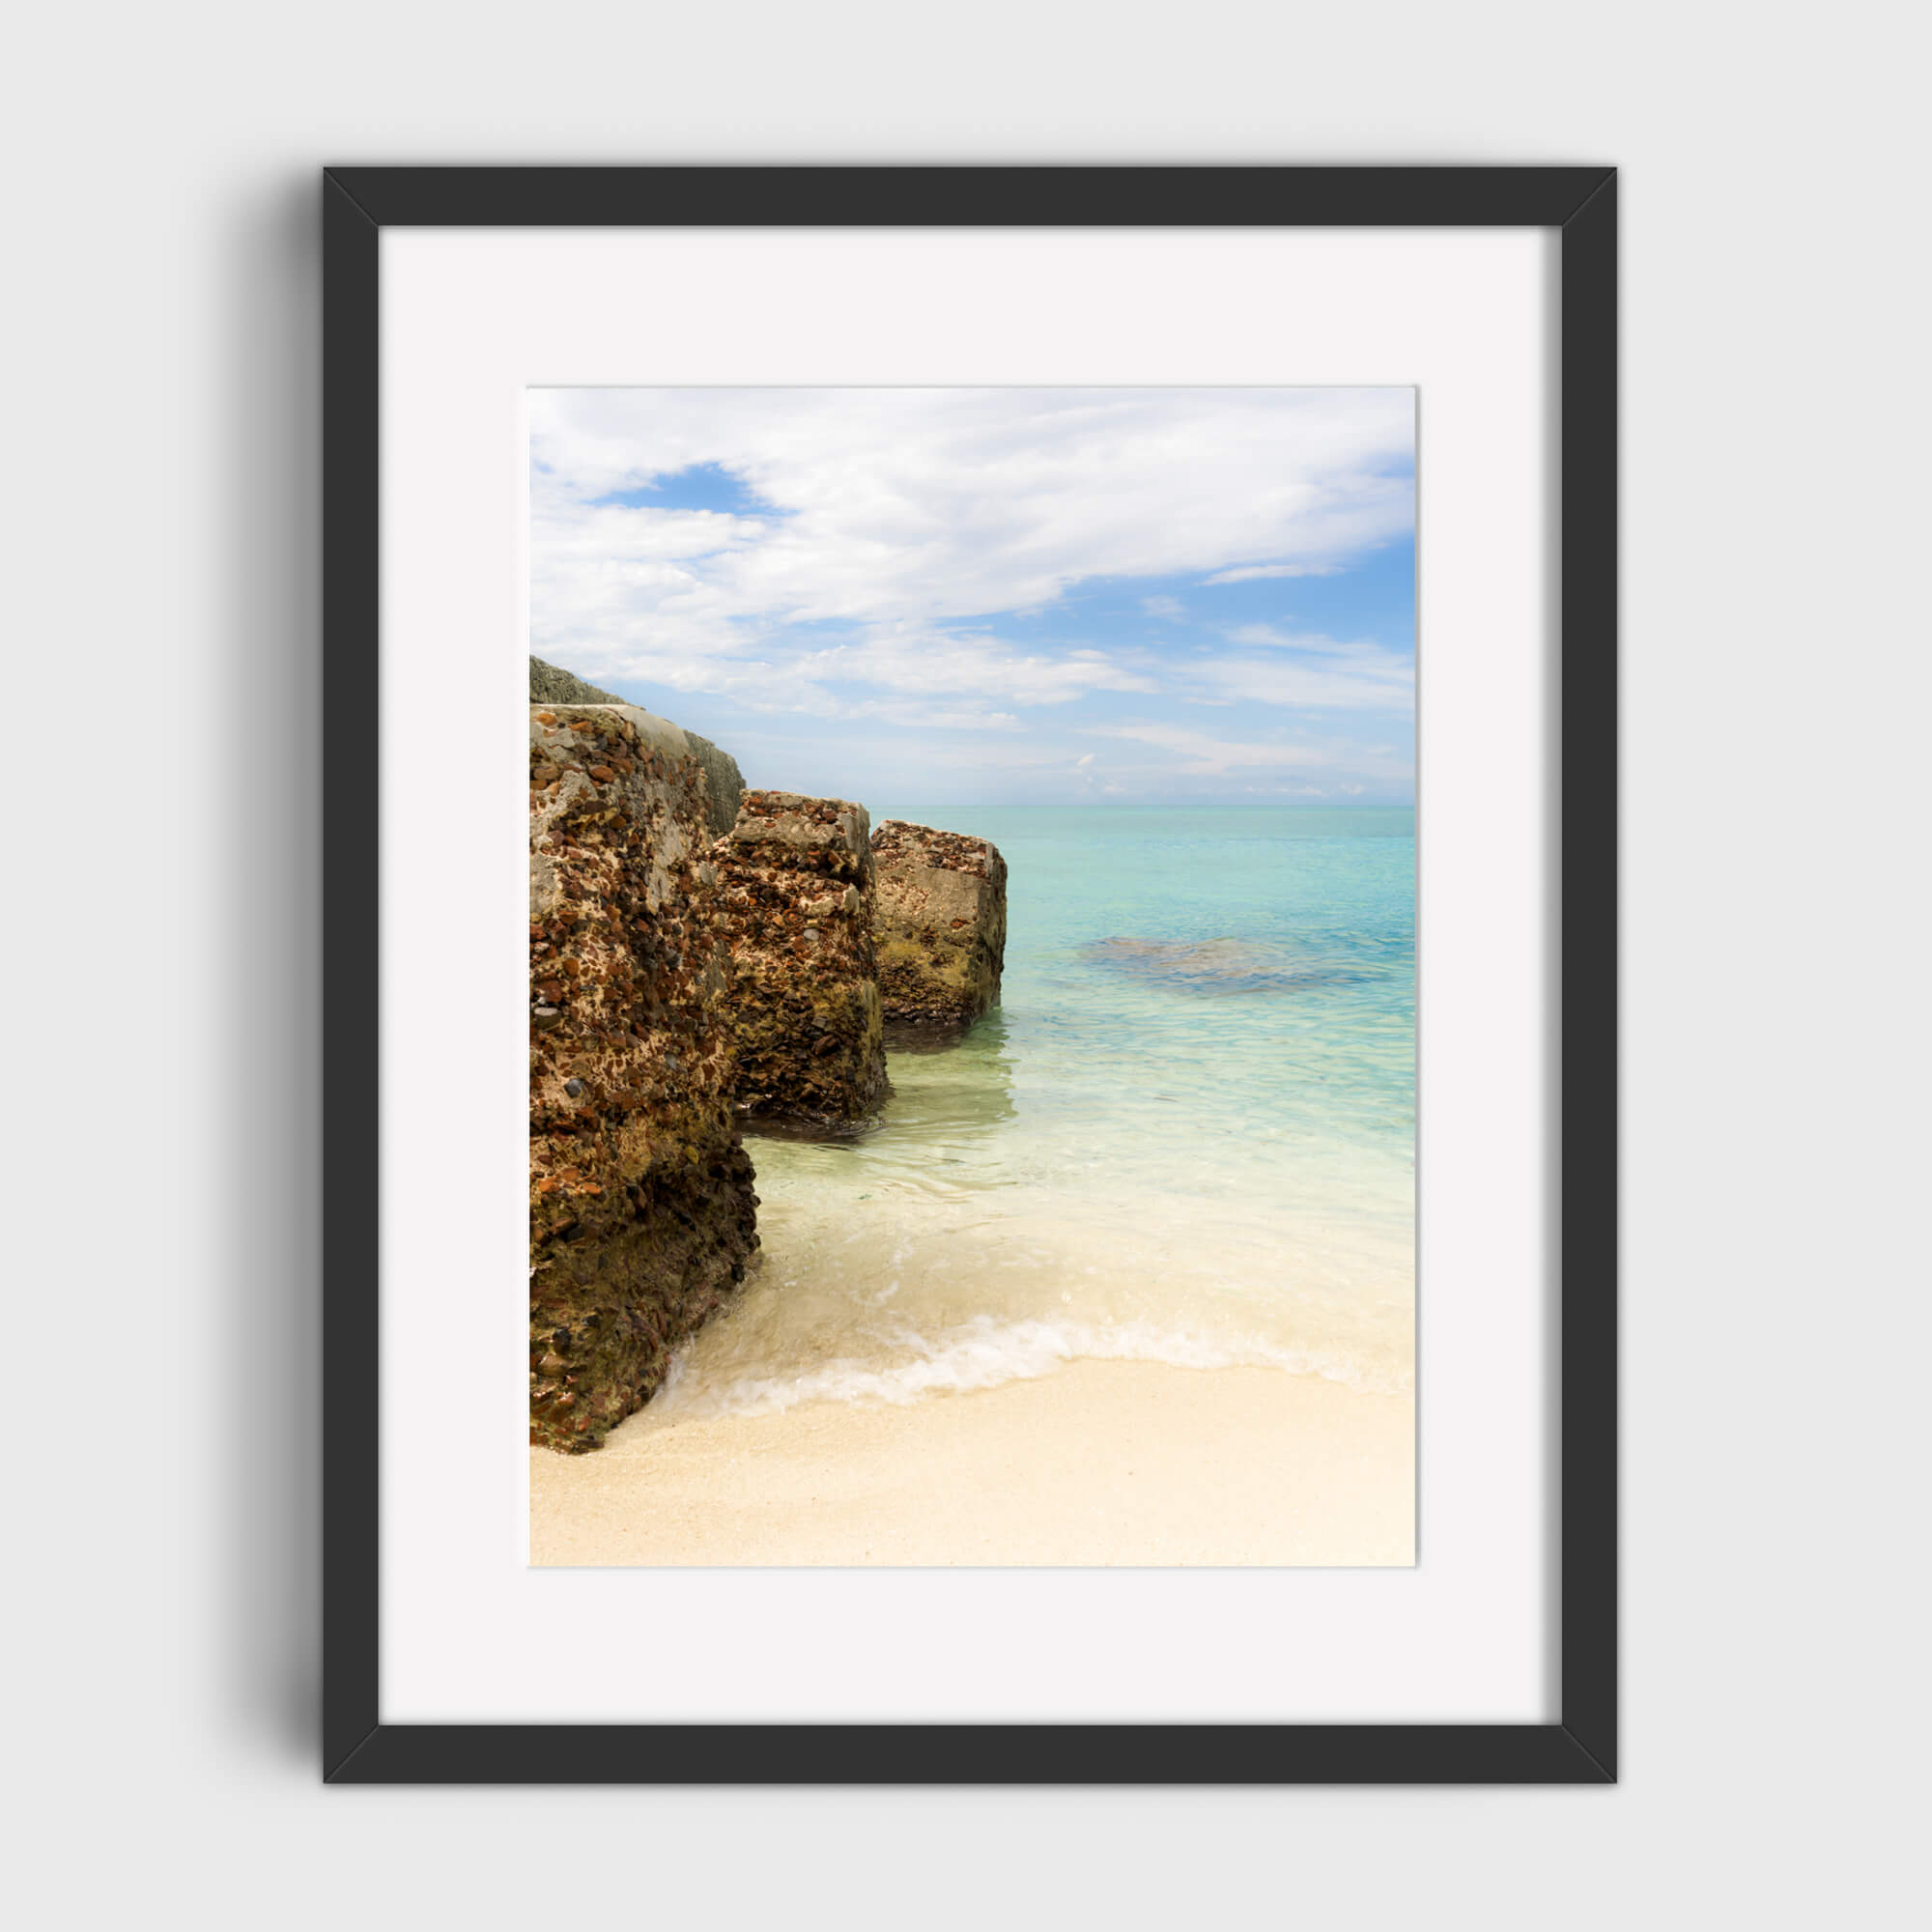 Tortuga Pillars - Care Studio Prints